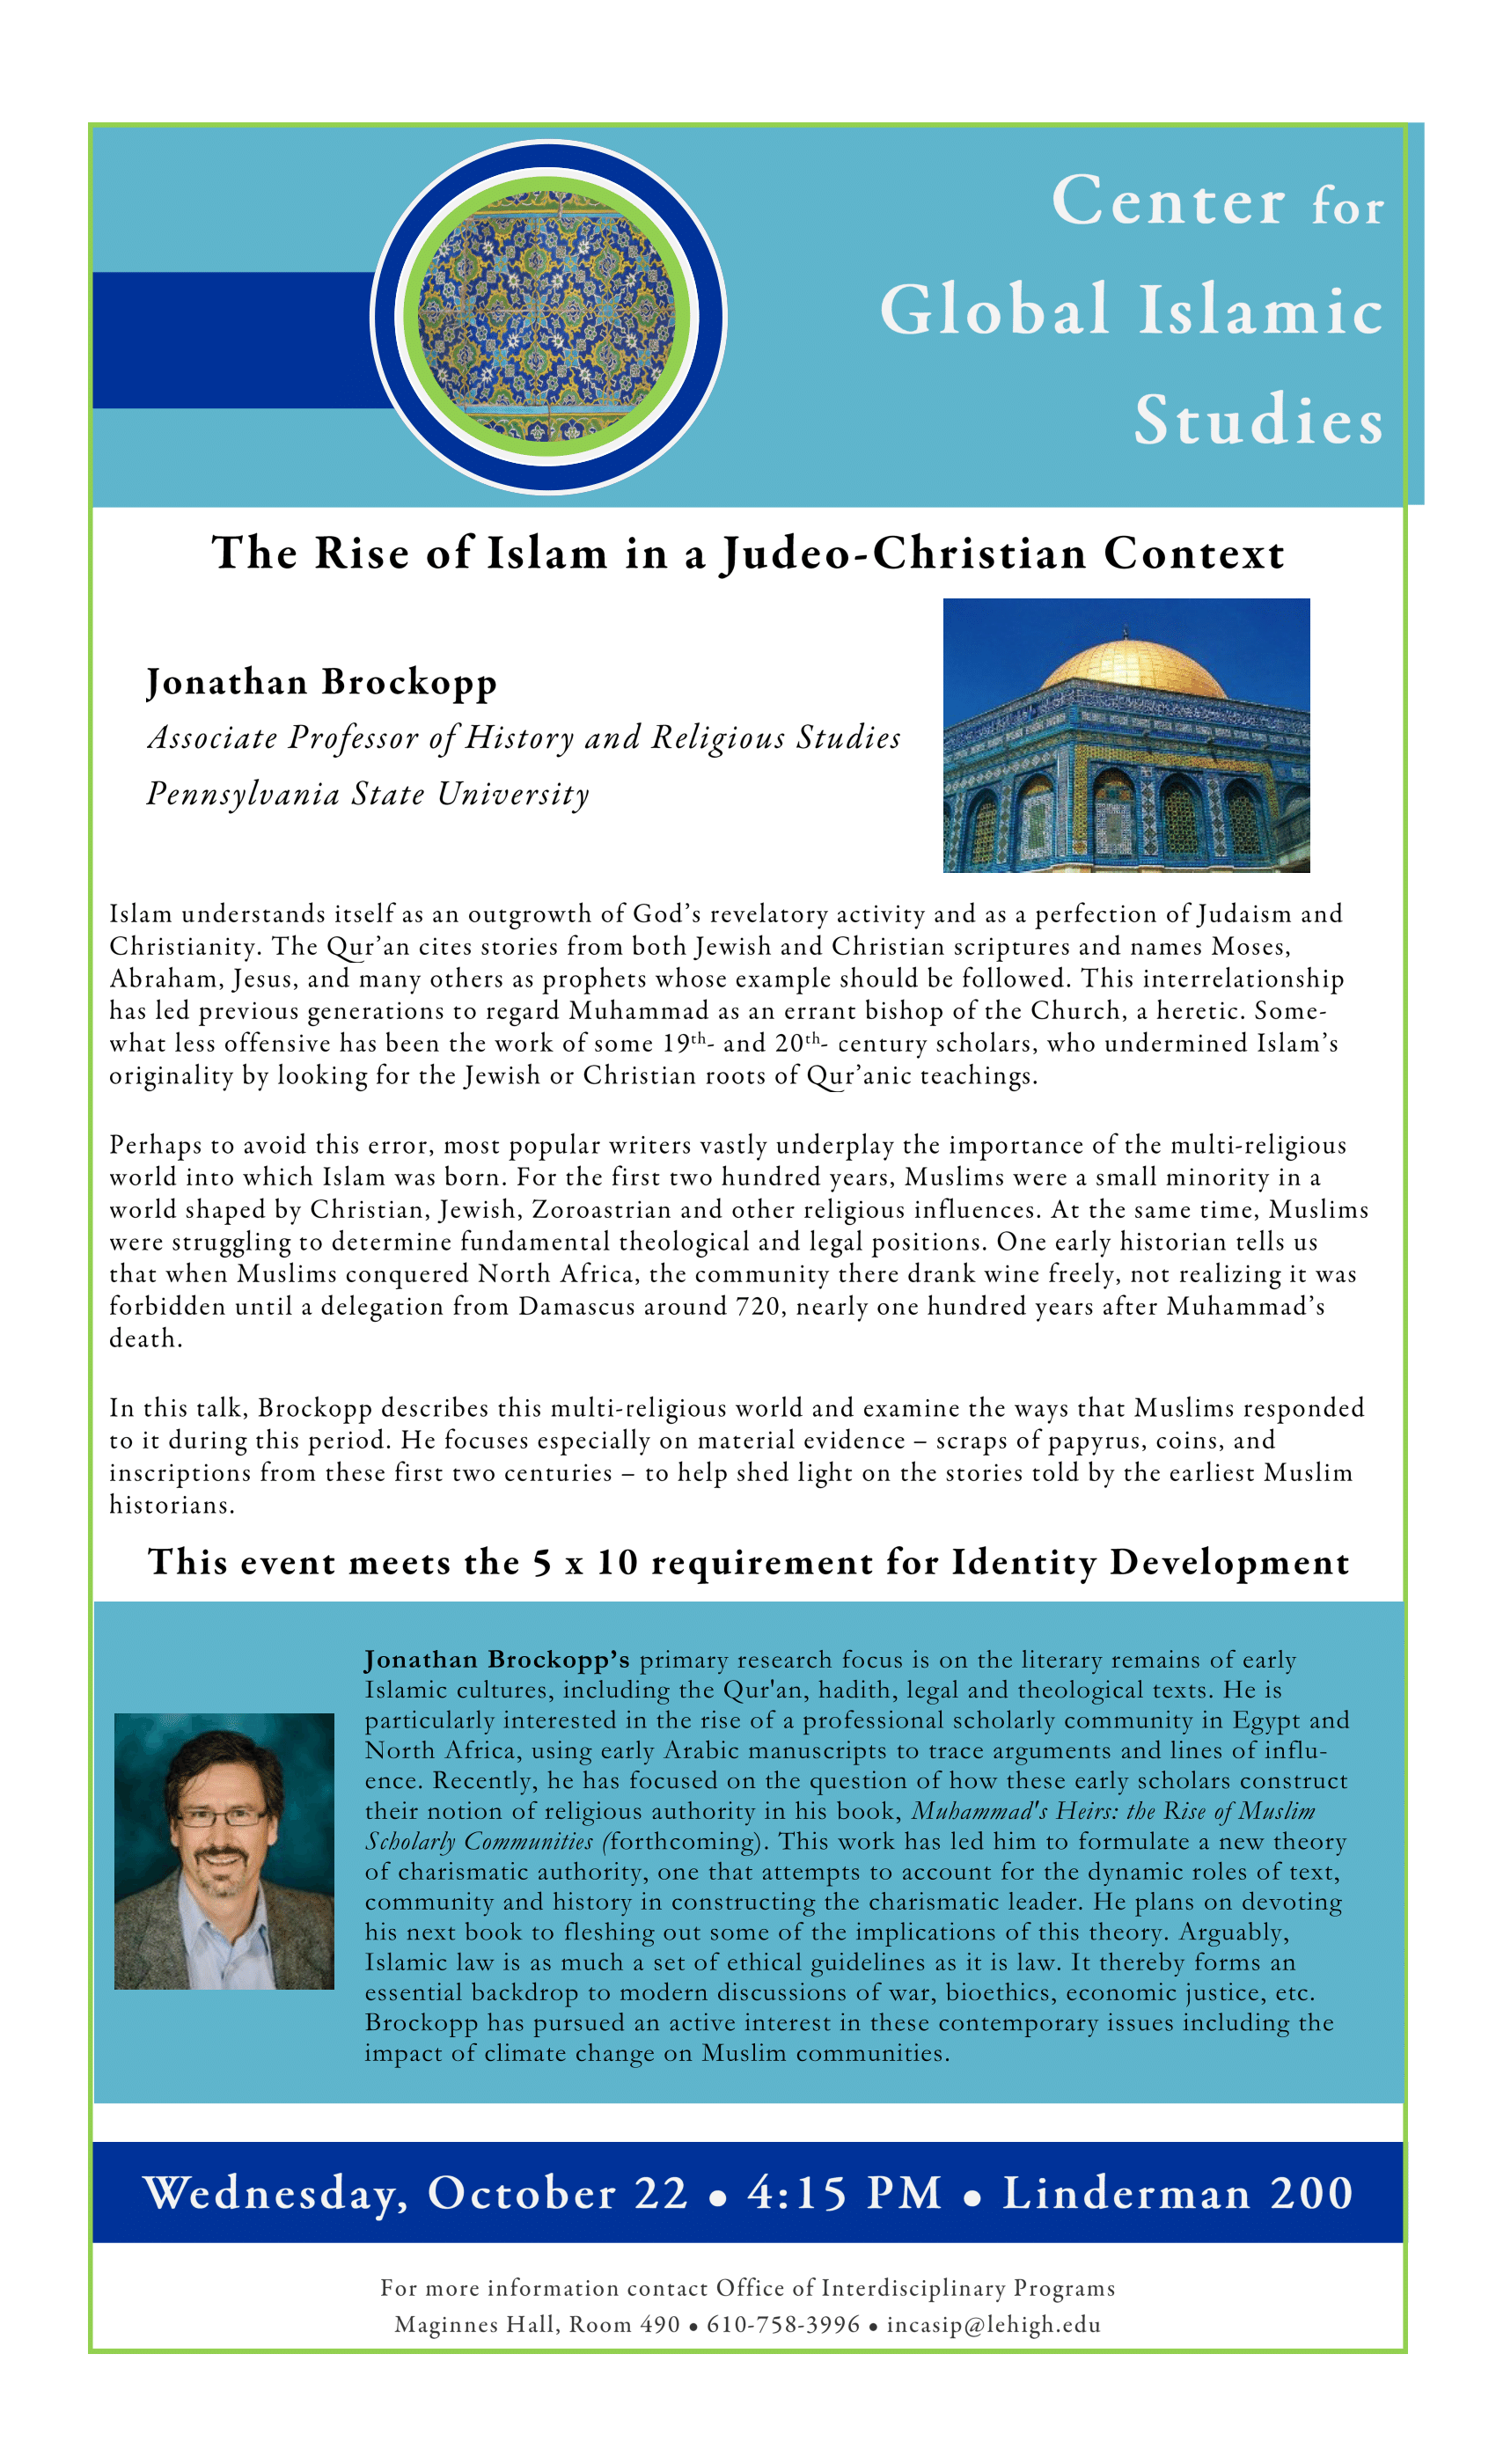 Lehigh University - Global Center for Islamic Studies - The Rise of Islam in a Judeo-Christian Context - Jonathan Brockhopper